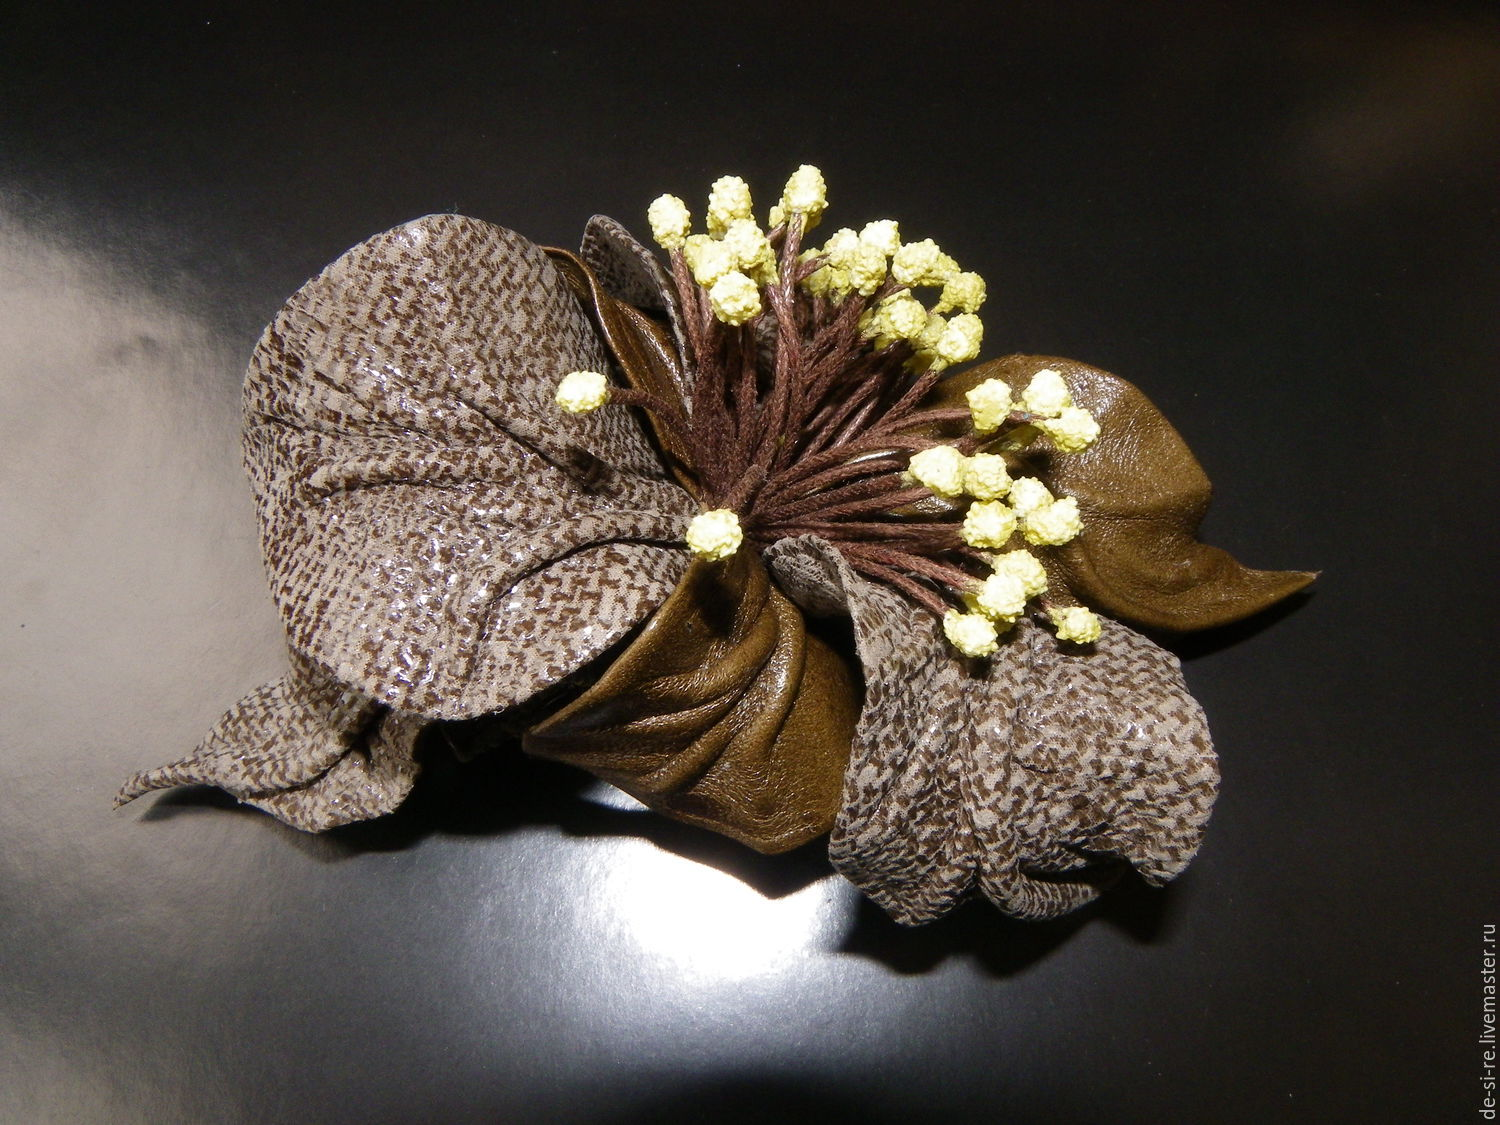 Hair clip machine hair leather `Diana` khaki olive . Convenient and reliable automatic barrette for the hair. The original volume of the author's flower for hair, hairstyles. Romantic decoration. Gift